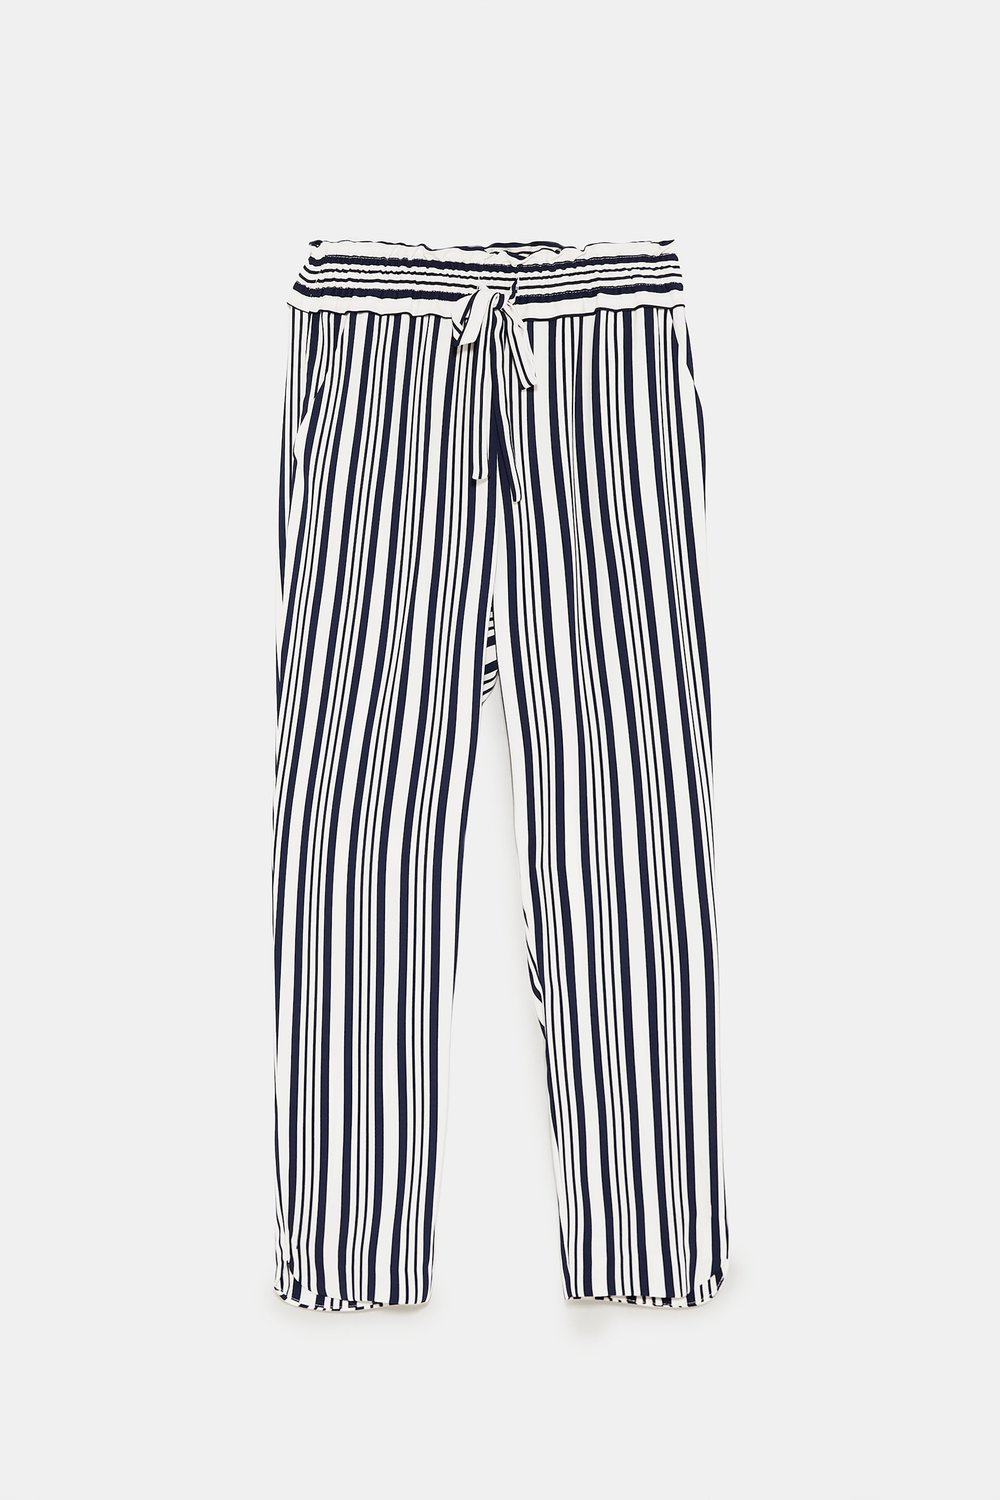 Zara loose fit stripe pants